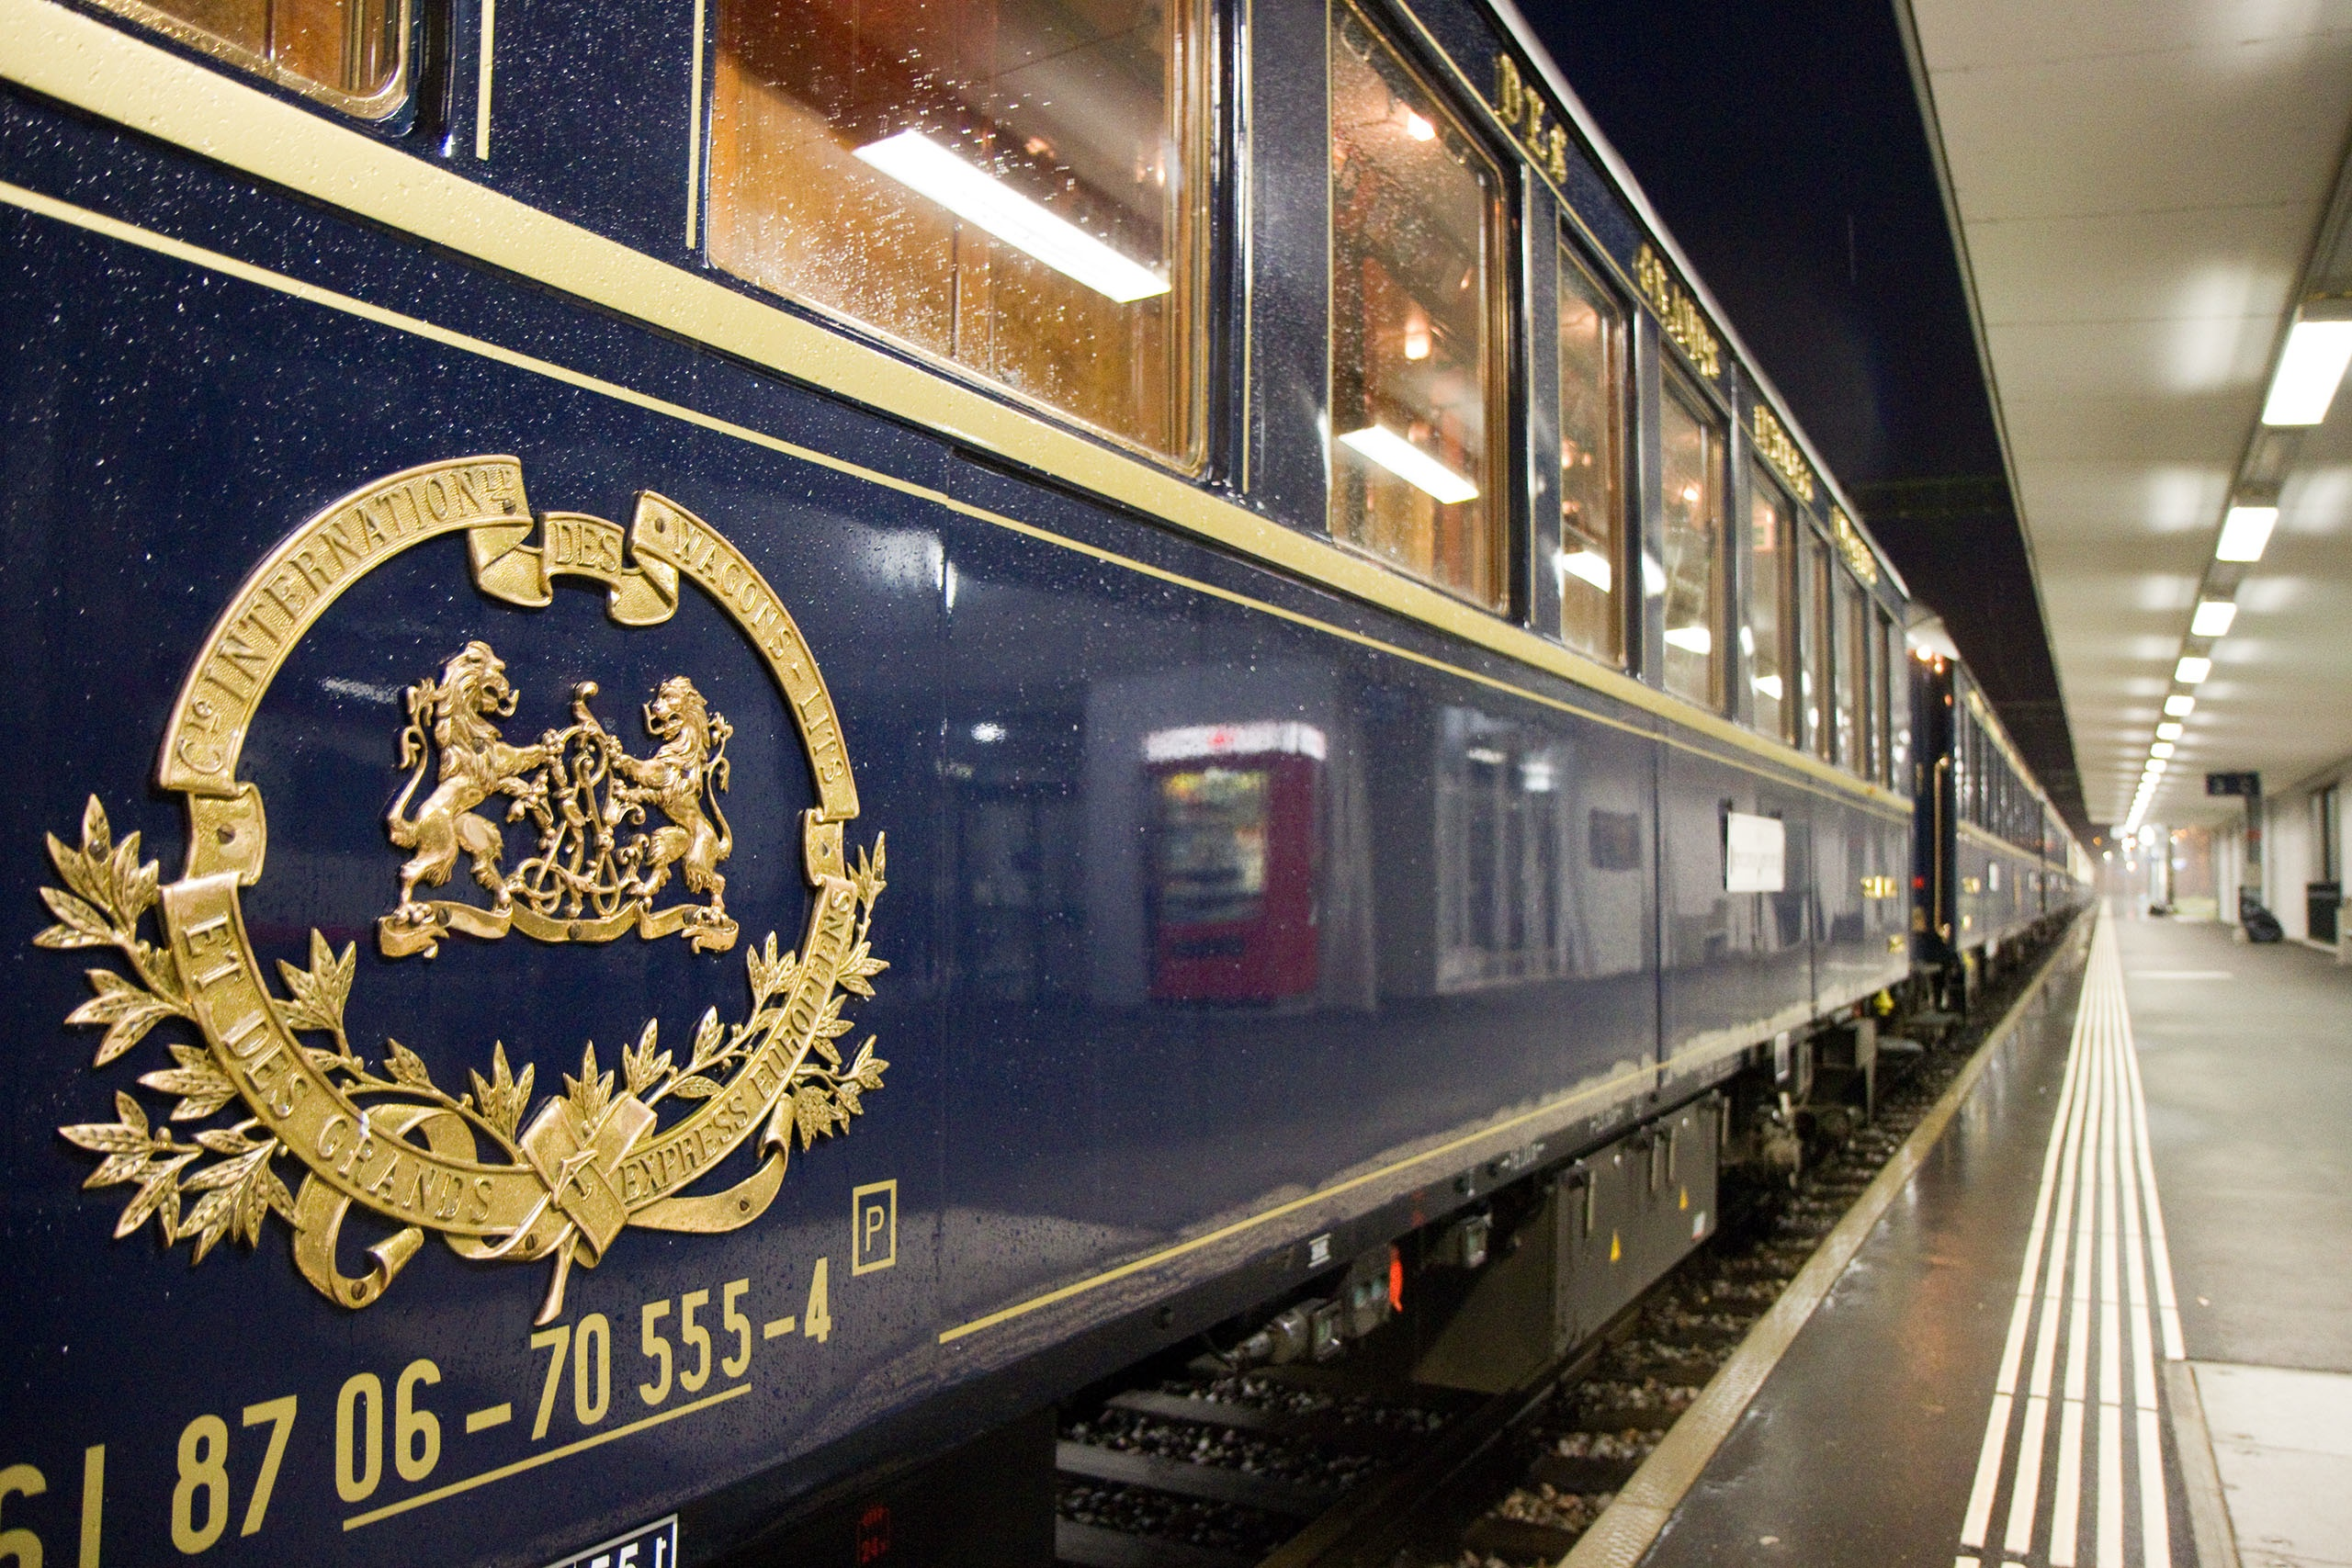 Take a ride on the world's most famous train with Orient Express History